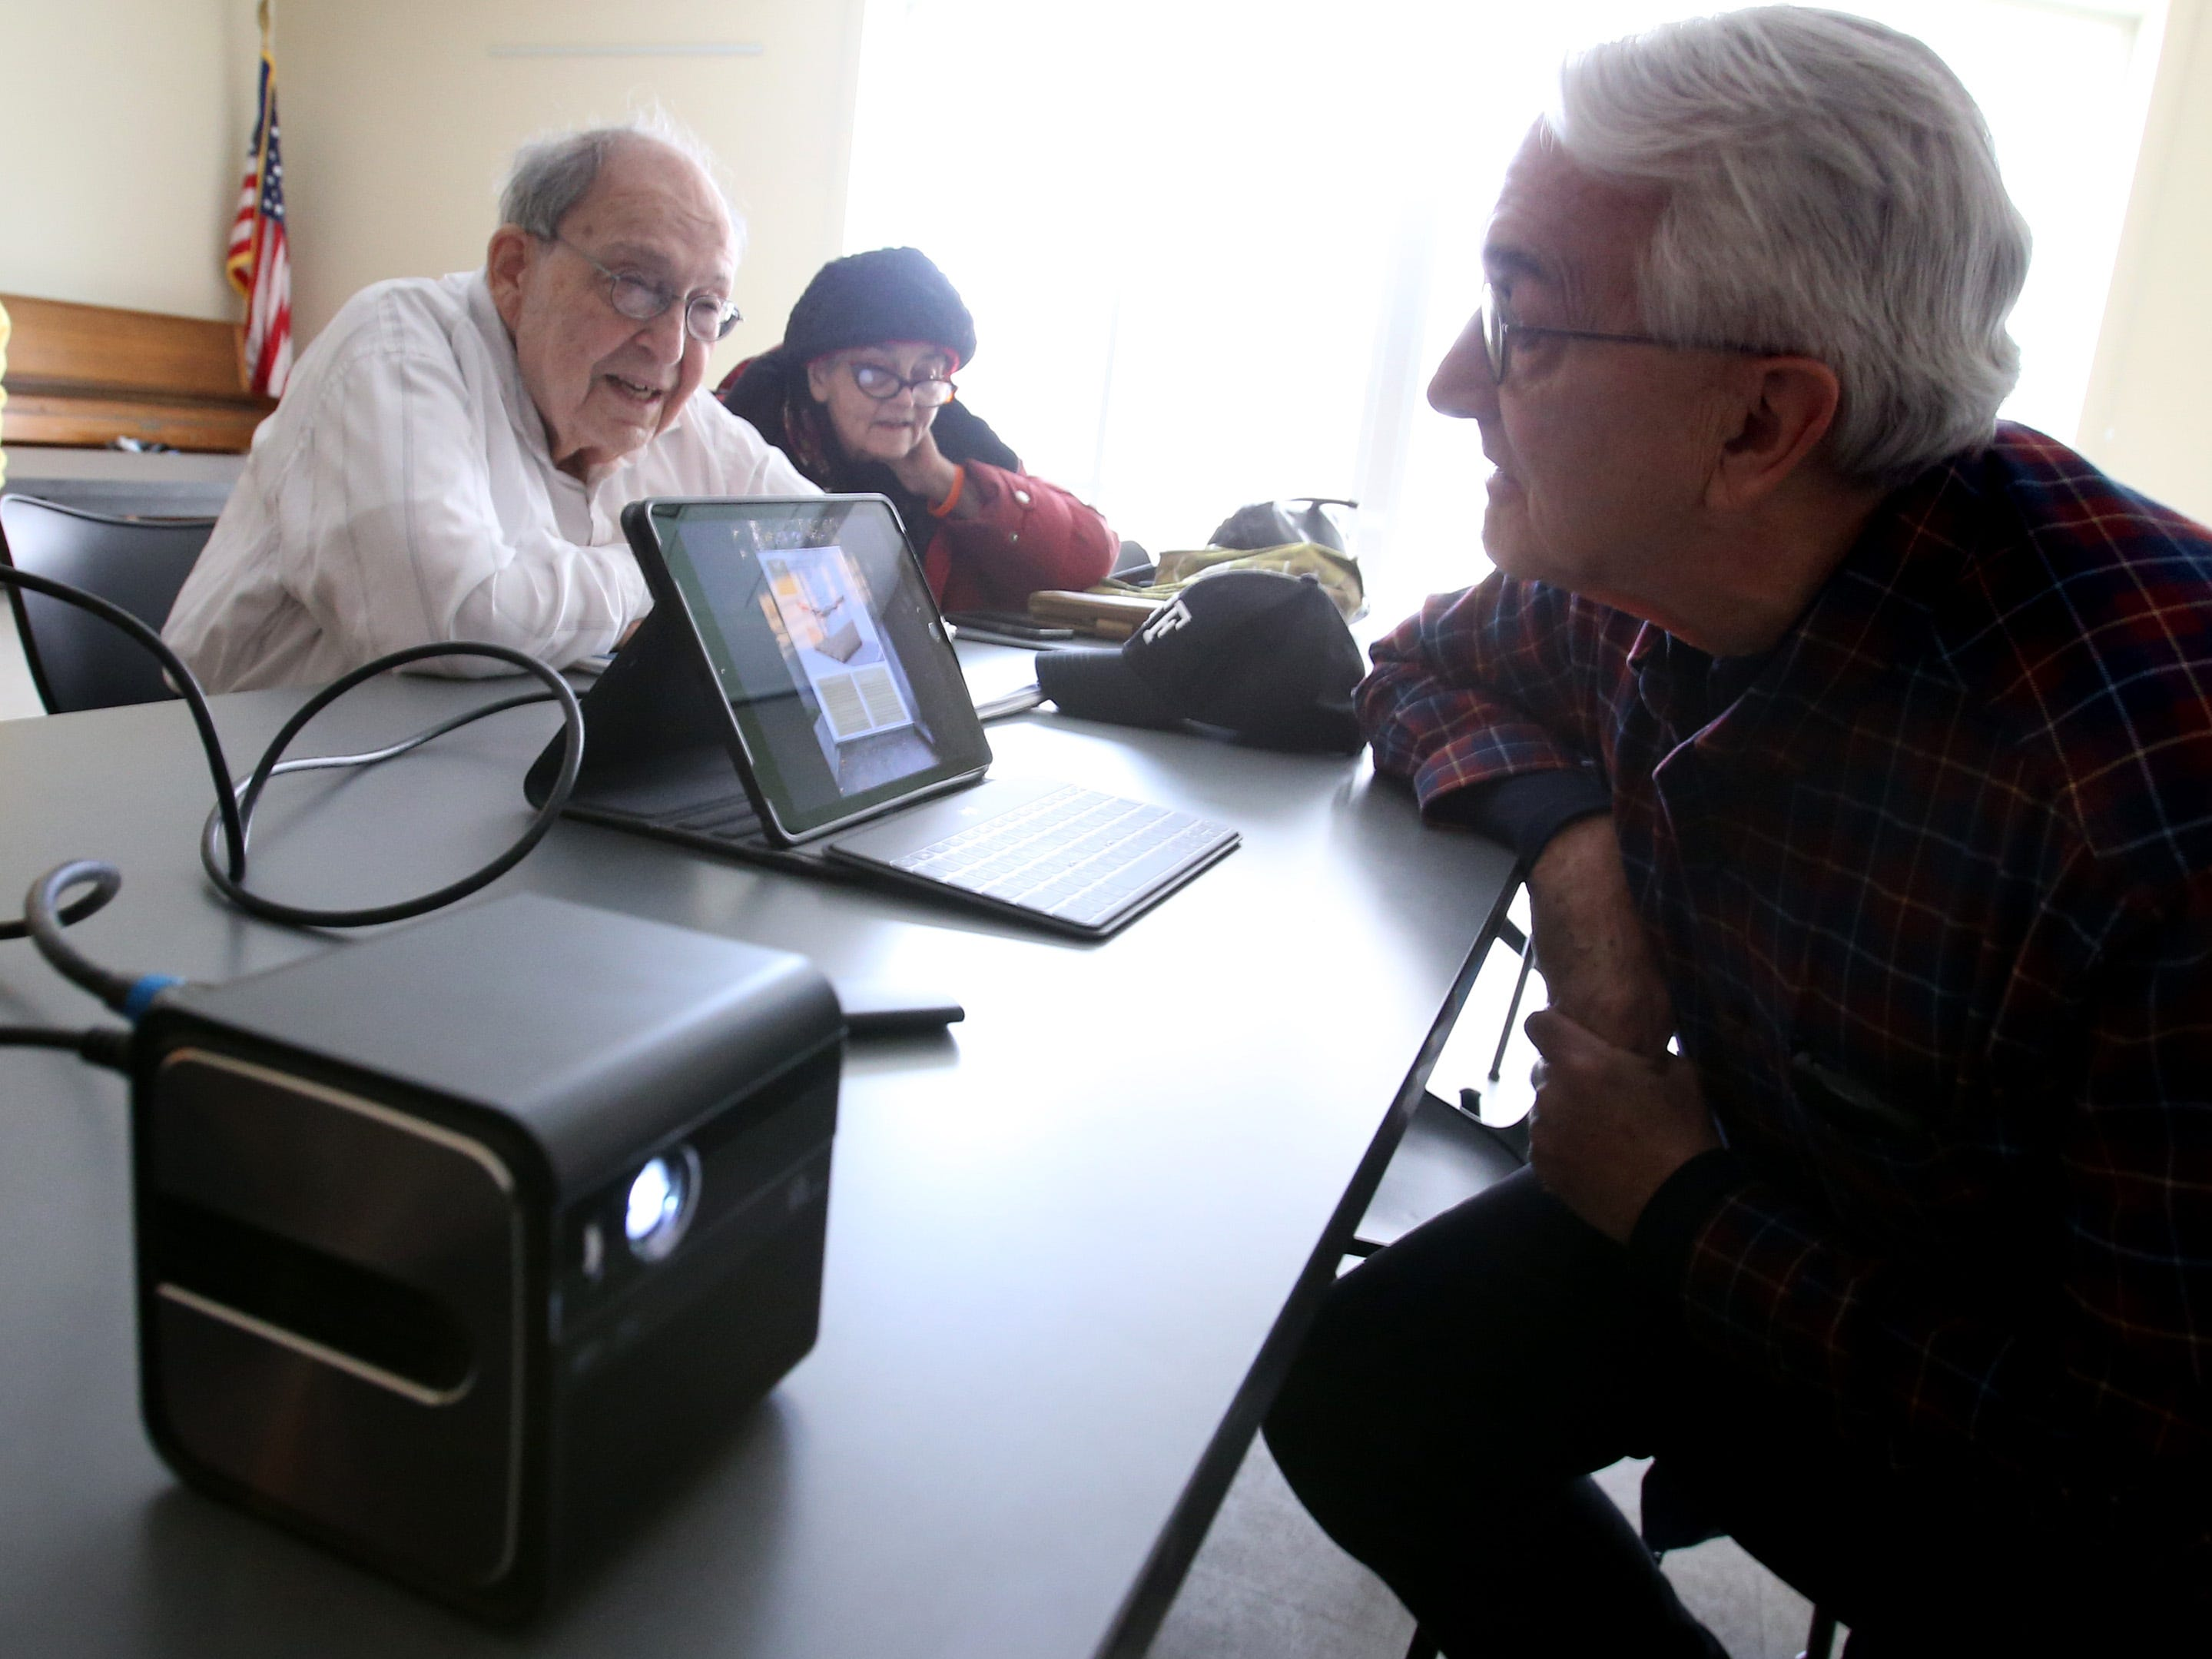 Peter Lee demonstates to Len Levine and Katie Briggs a recently released GoSho portable high-definition projector that can connect to touch devices and computers during a gathering of If It Goes Beep, an informal discussion and problem solving group that meets at 9 a.m. Fridays at the Shorewood Senior Resource Center. The Center also offers One-to-One Tech Support Fridays from 9 a.m. to 11:30 a.m. for people to stop in with their technology questions.